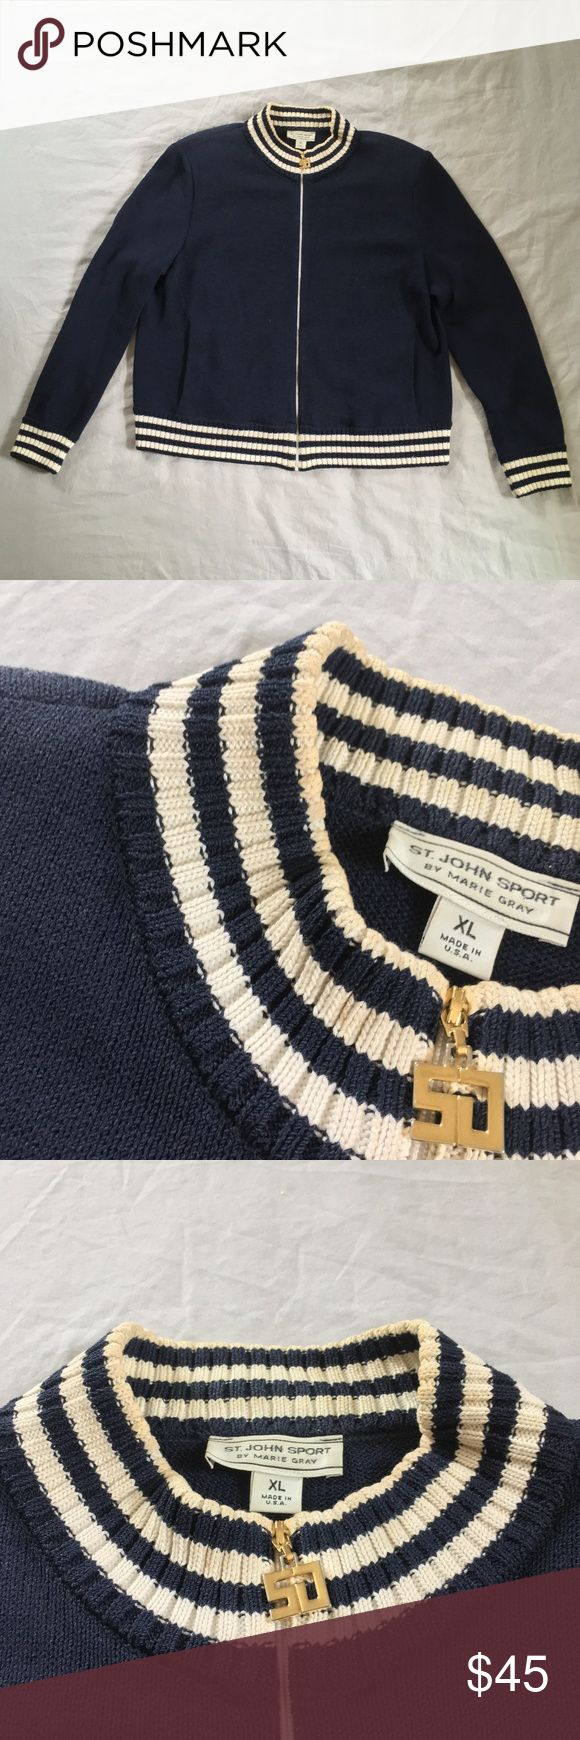 St. John Nautical knit zip up sweater Great quality knit zip up from St. John Marie Gray.  Has light padding in the shoulders, removable if desired and two pockets in the front.  Zip up is in great condition, no tears, or pulls, but needs a trip to the dry cleaners, to remove slight discoloration from the collar and wrists.  Nautical navy blue and white stripes on collar, waist and wrists, with gold hardware accents.  This is a great sweater to wear on beach nights and out on the boat!  72%…